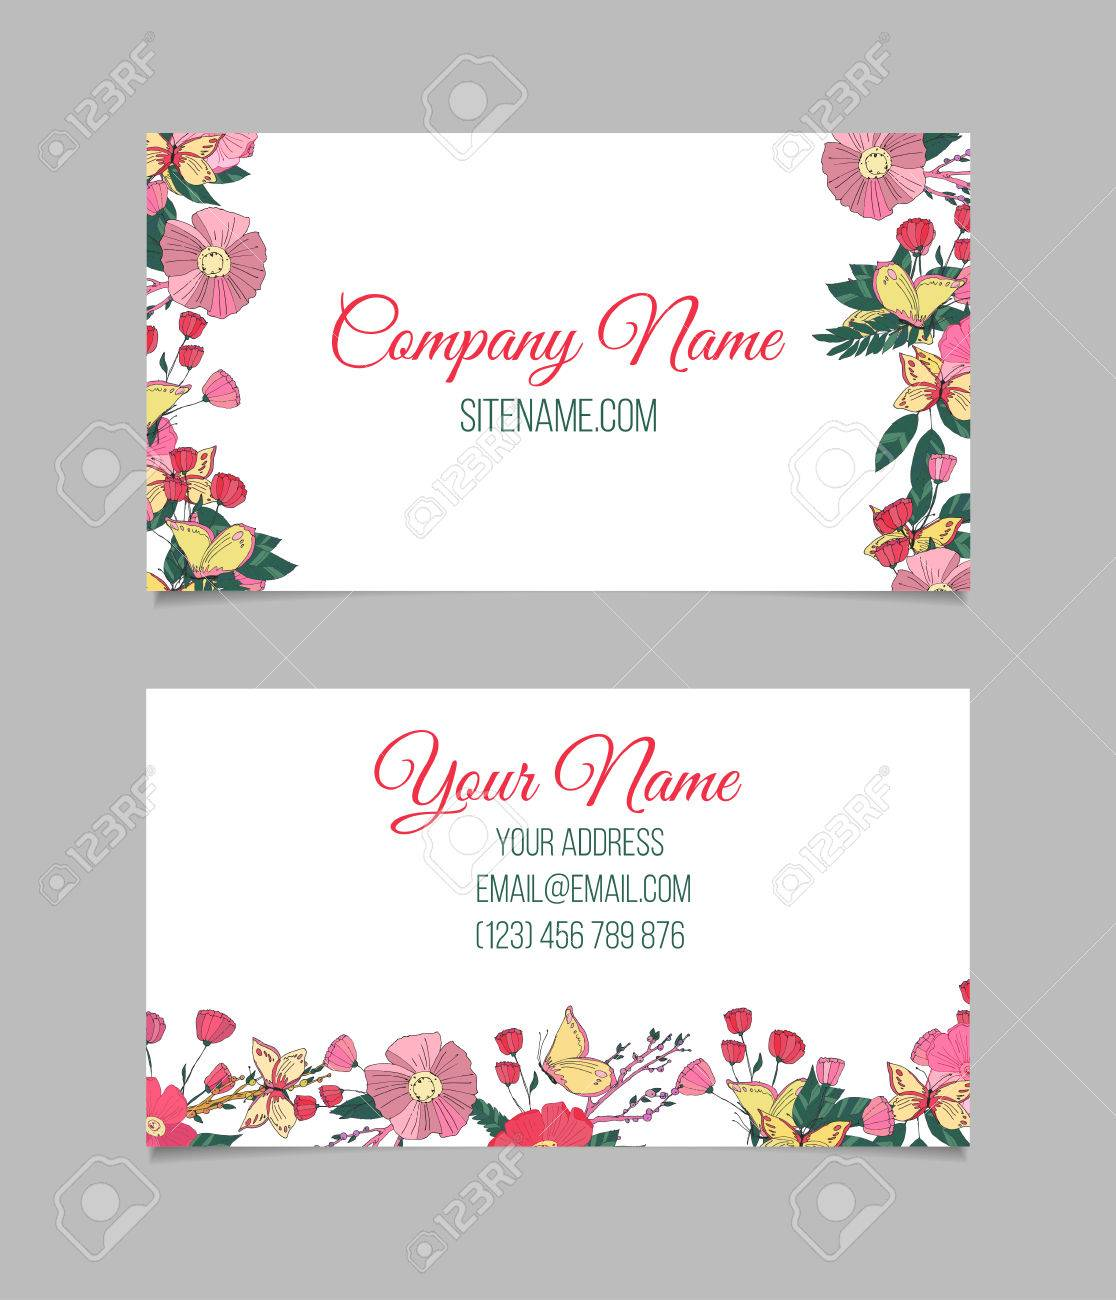 Flower Business Card Gallery - Free Business Cards